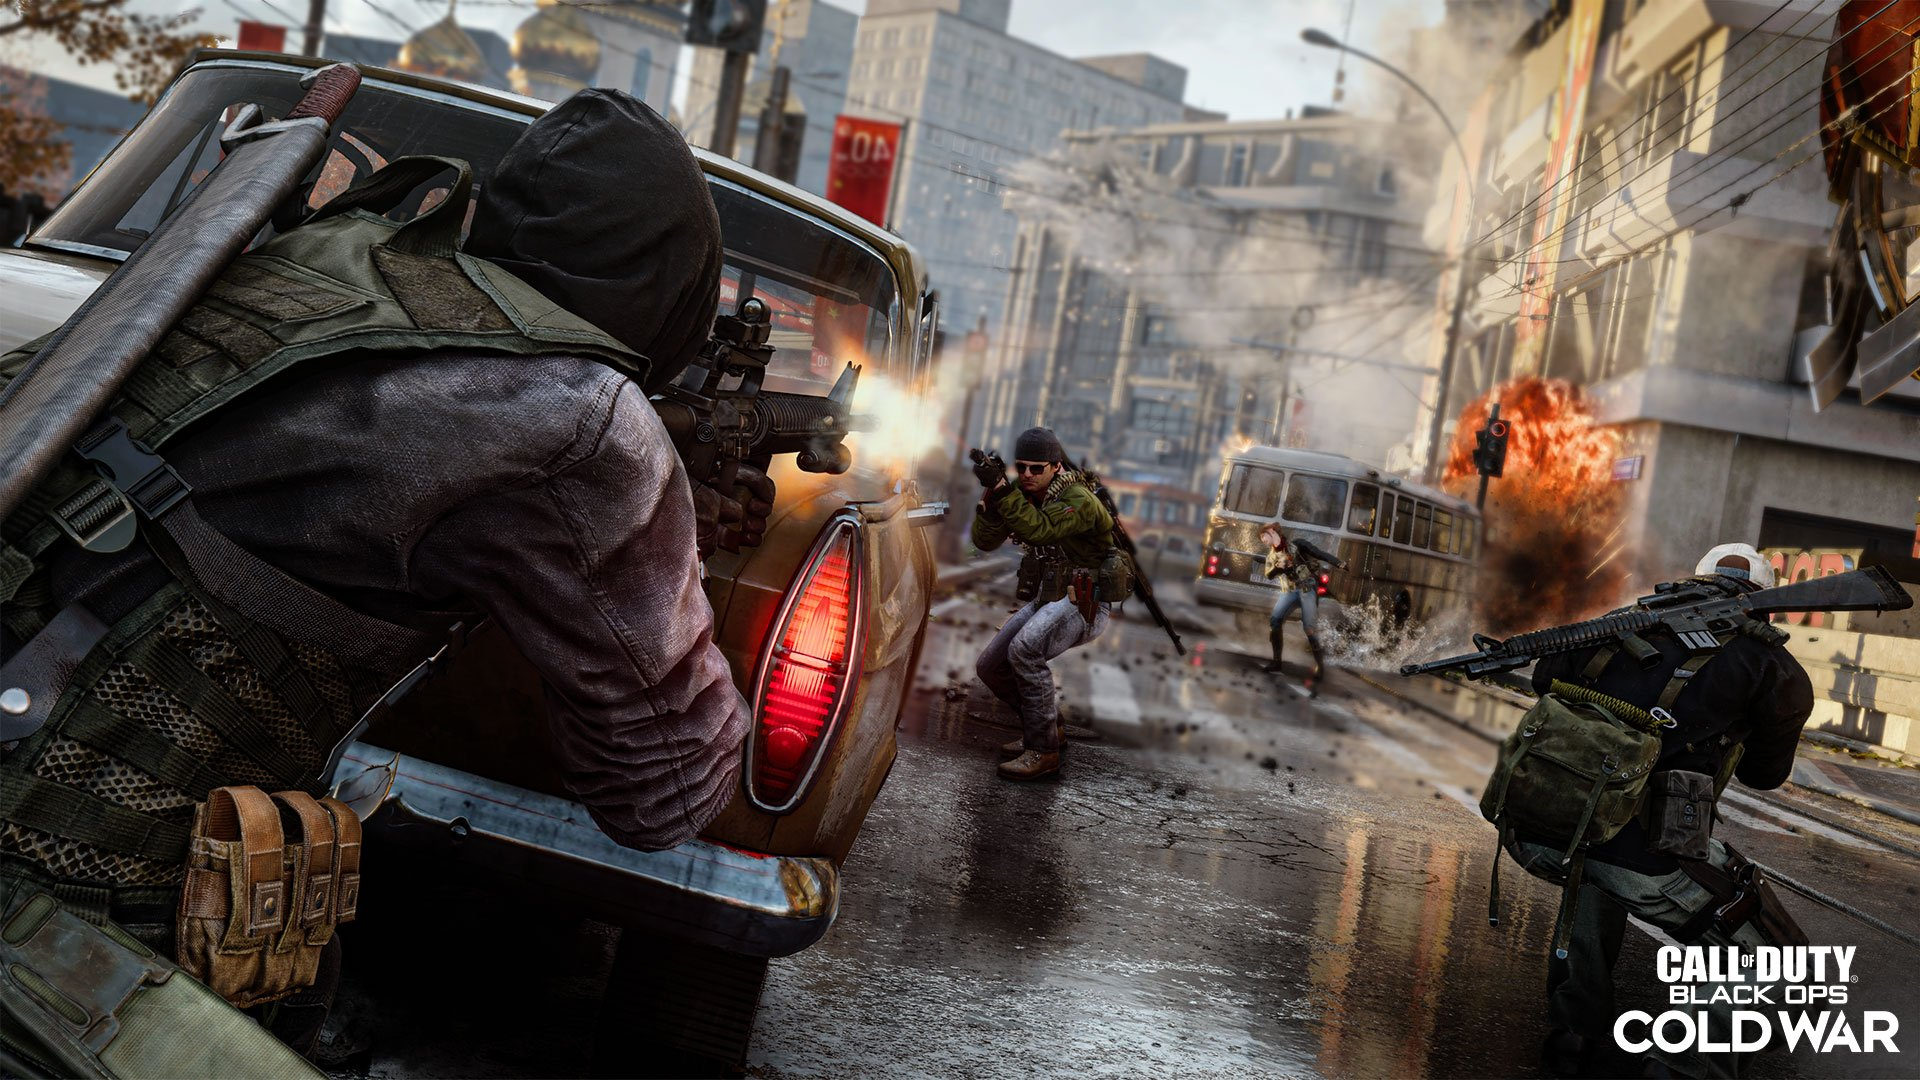 Call Of Duty: Black Ops Cold War Beta Extended To October 20, New Update Unlocks All Attachments